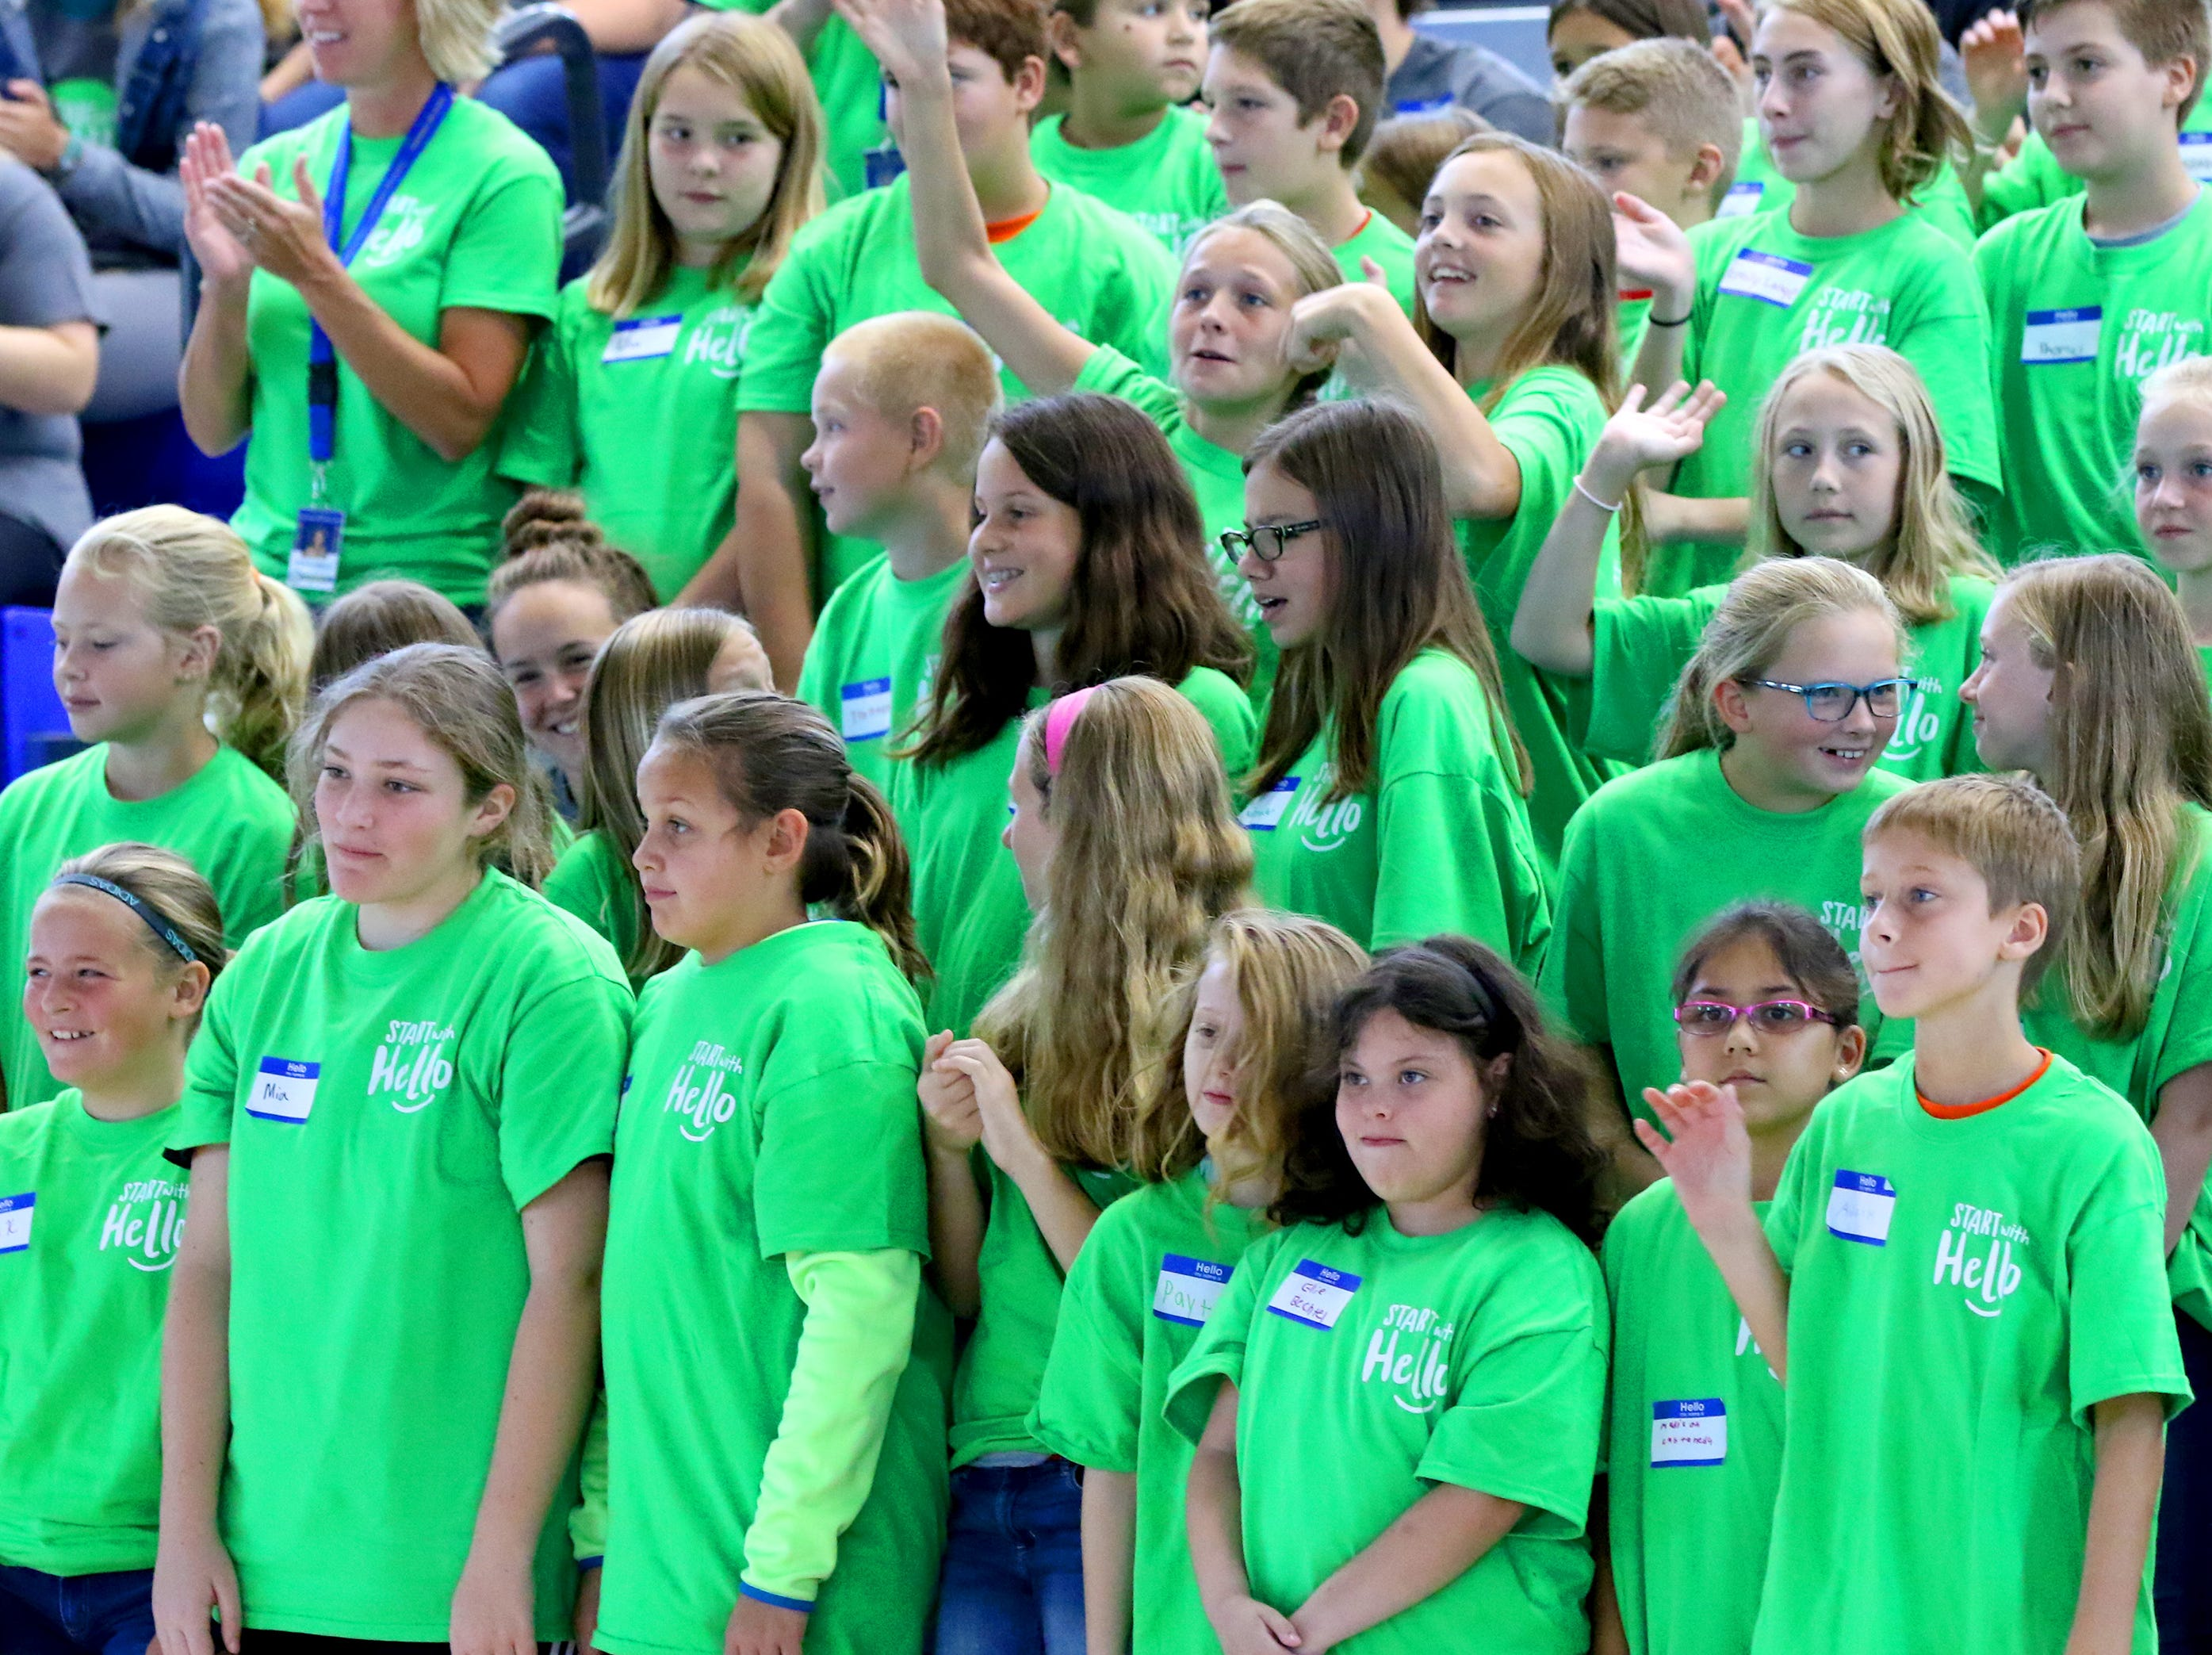 Student from Big Bend Elementary joined Mukwonago High School students during a Sept. 12 all-school assembly to receive the grand prize for the school's Start With Hello program from the Sandy Hook Promise project.